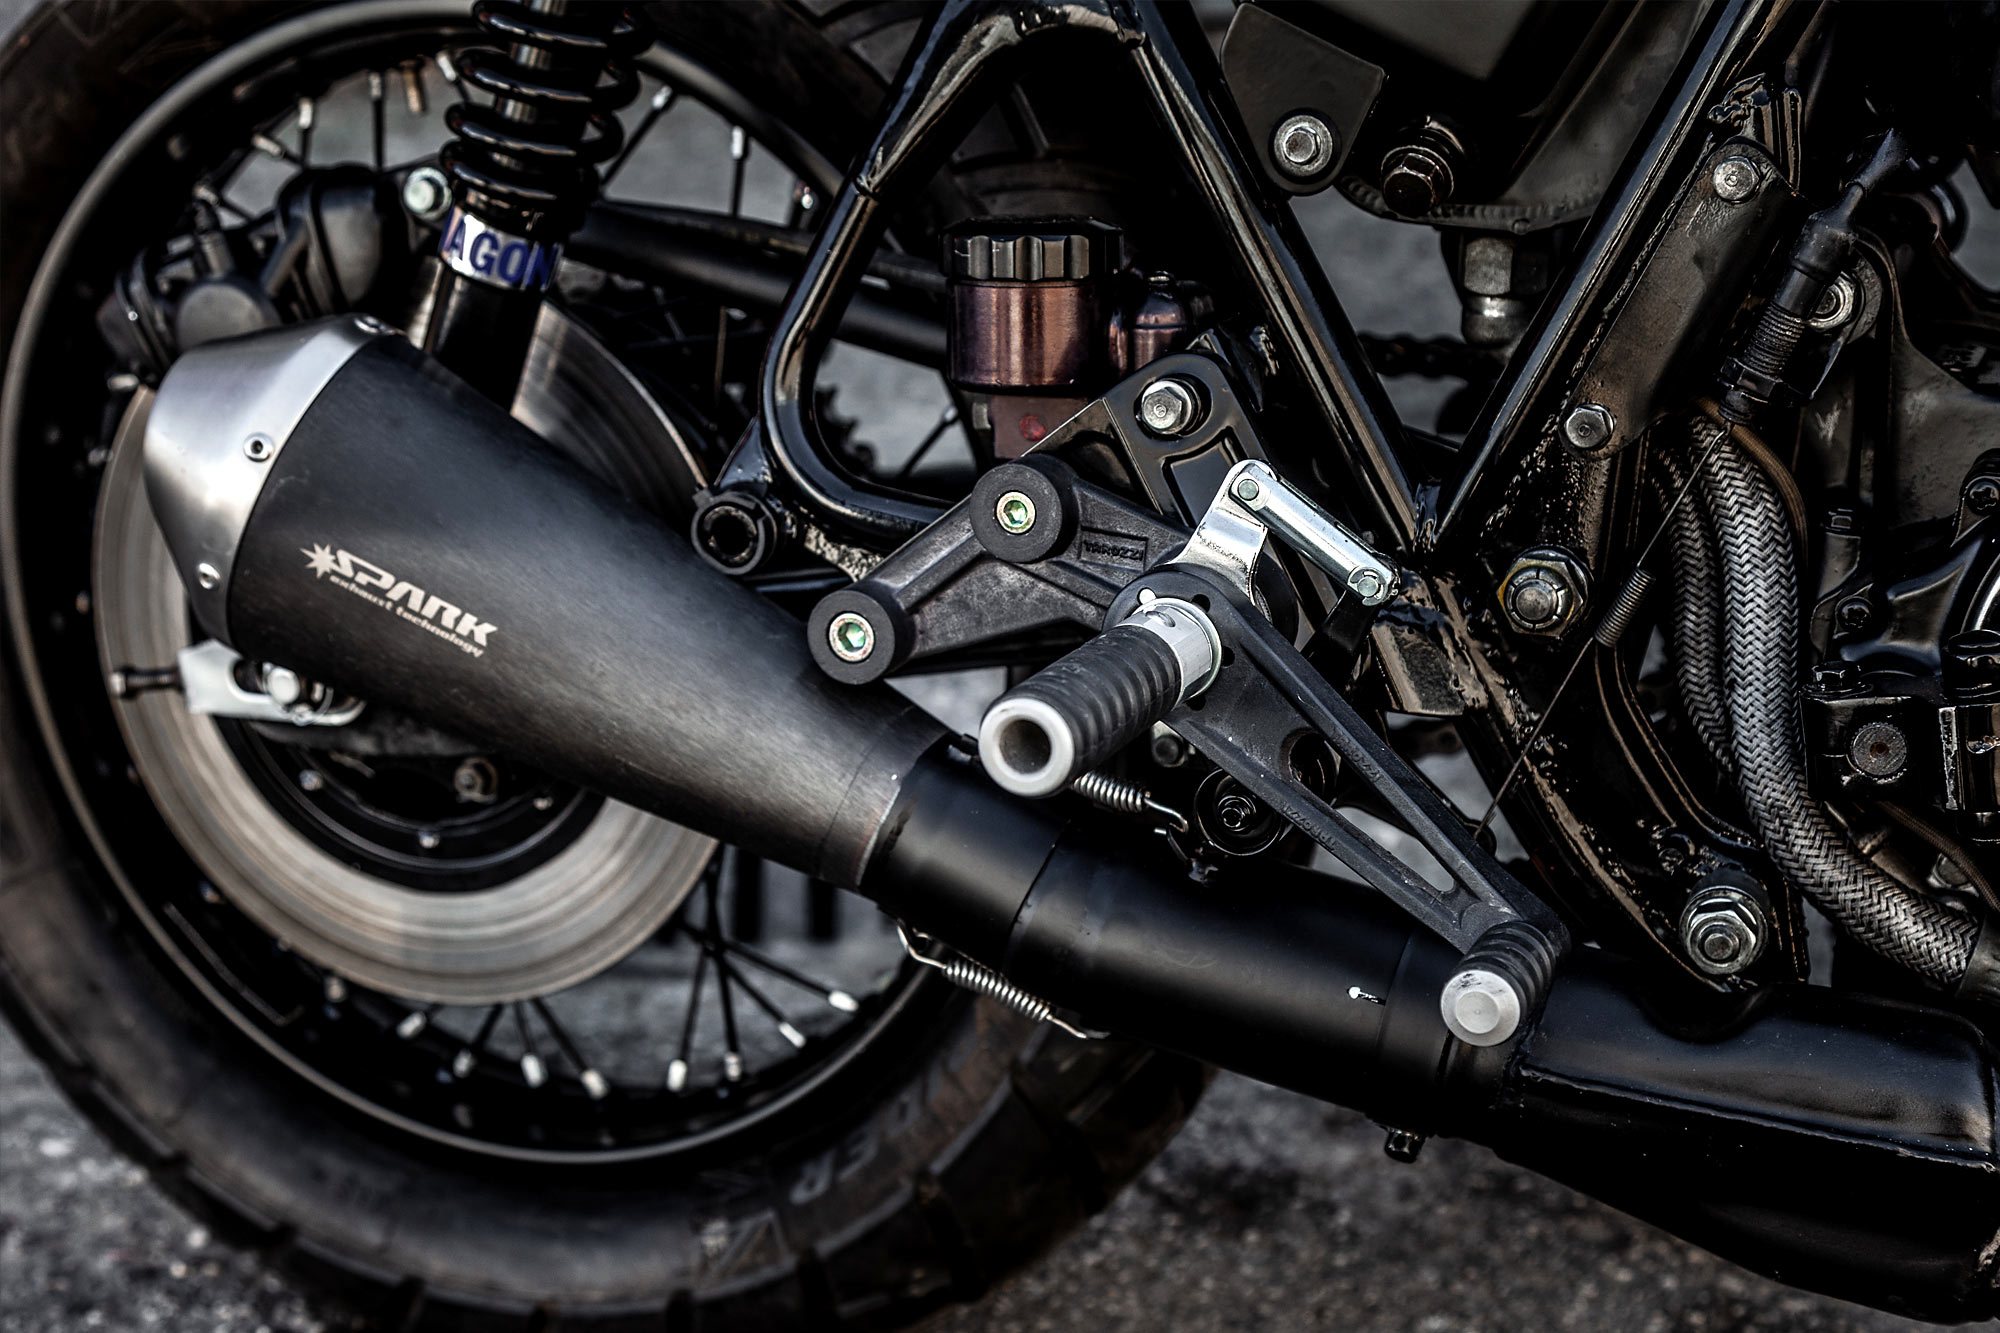 MONSTER, INC  Macco Motor's 'Chimera' Honda CB750 SuperSport